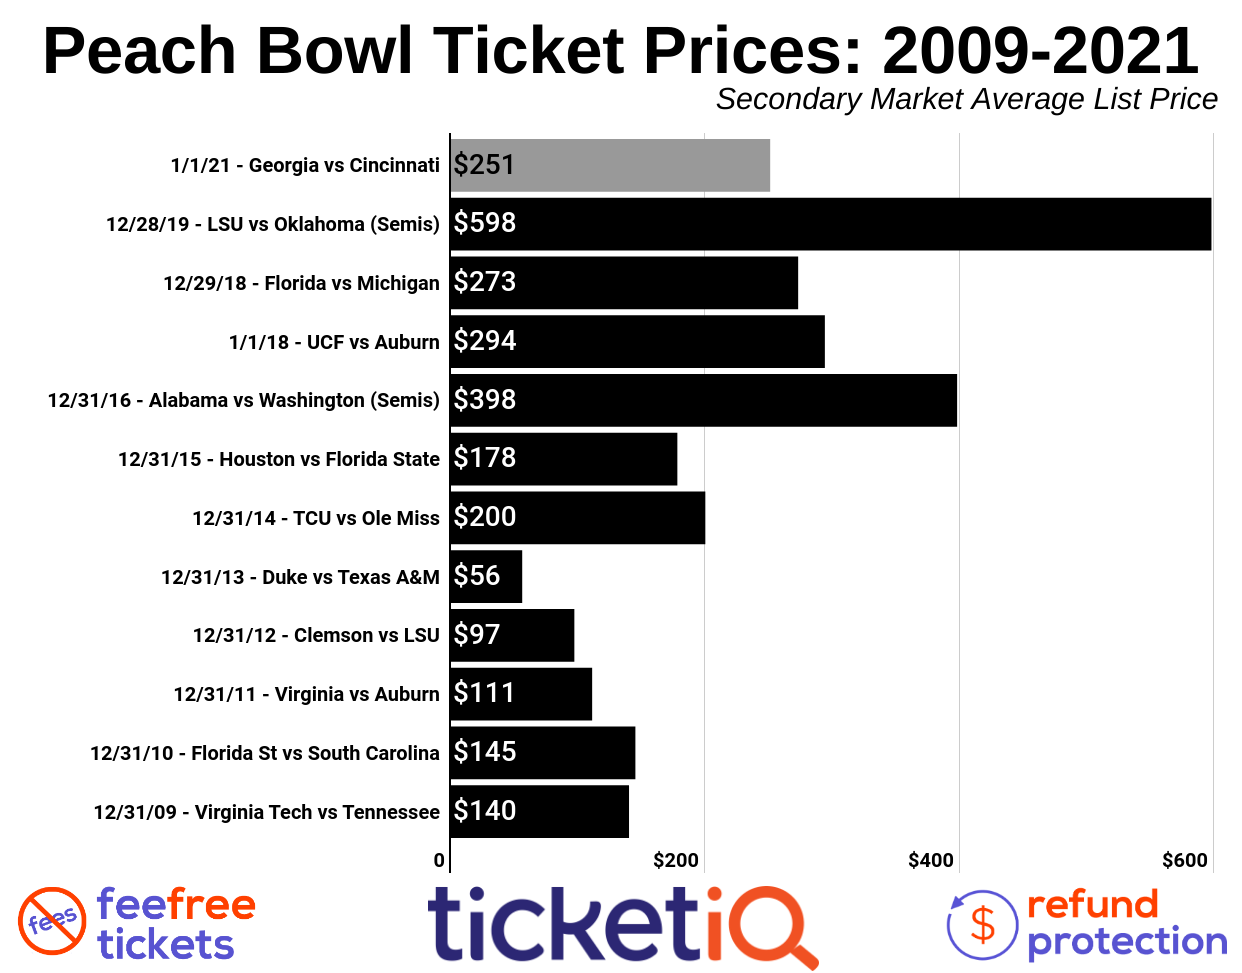 How To Find The Cheapest Peach Bowl Tickets (Georgia vs Cincinnati)